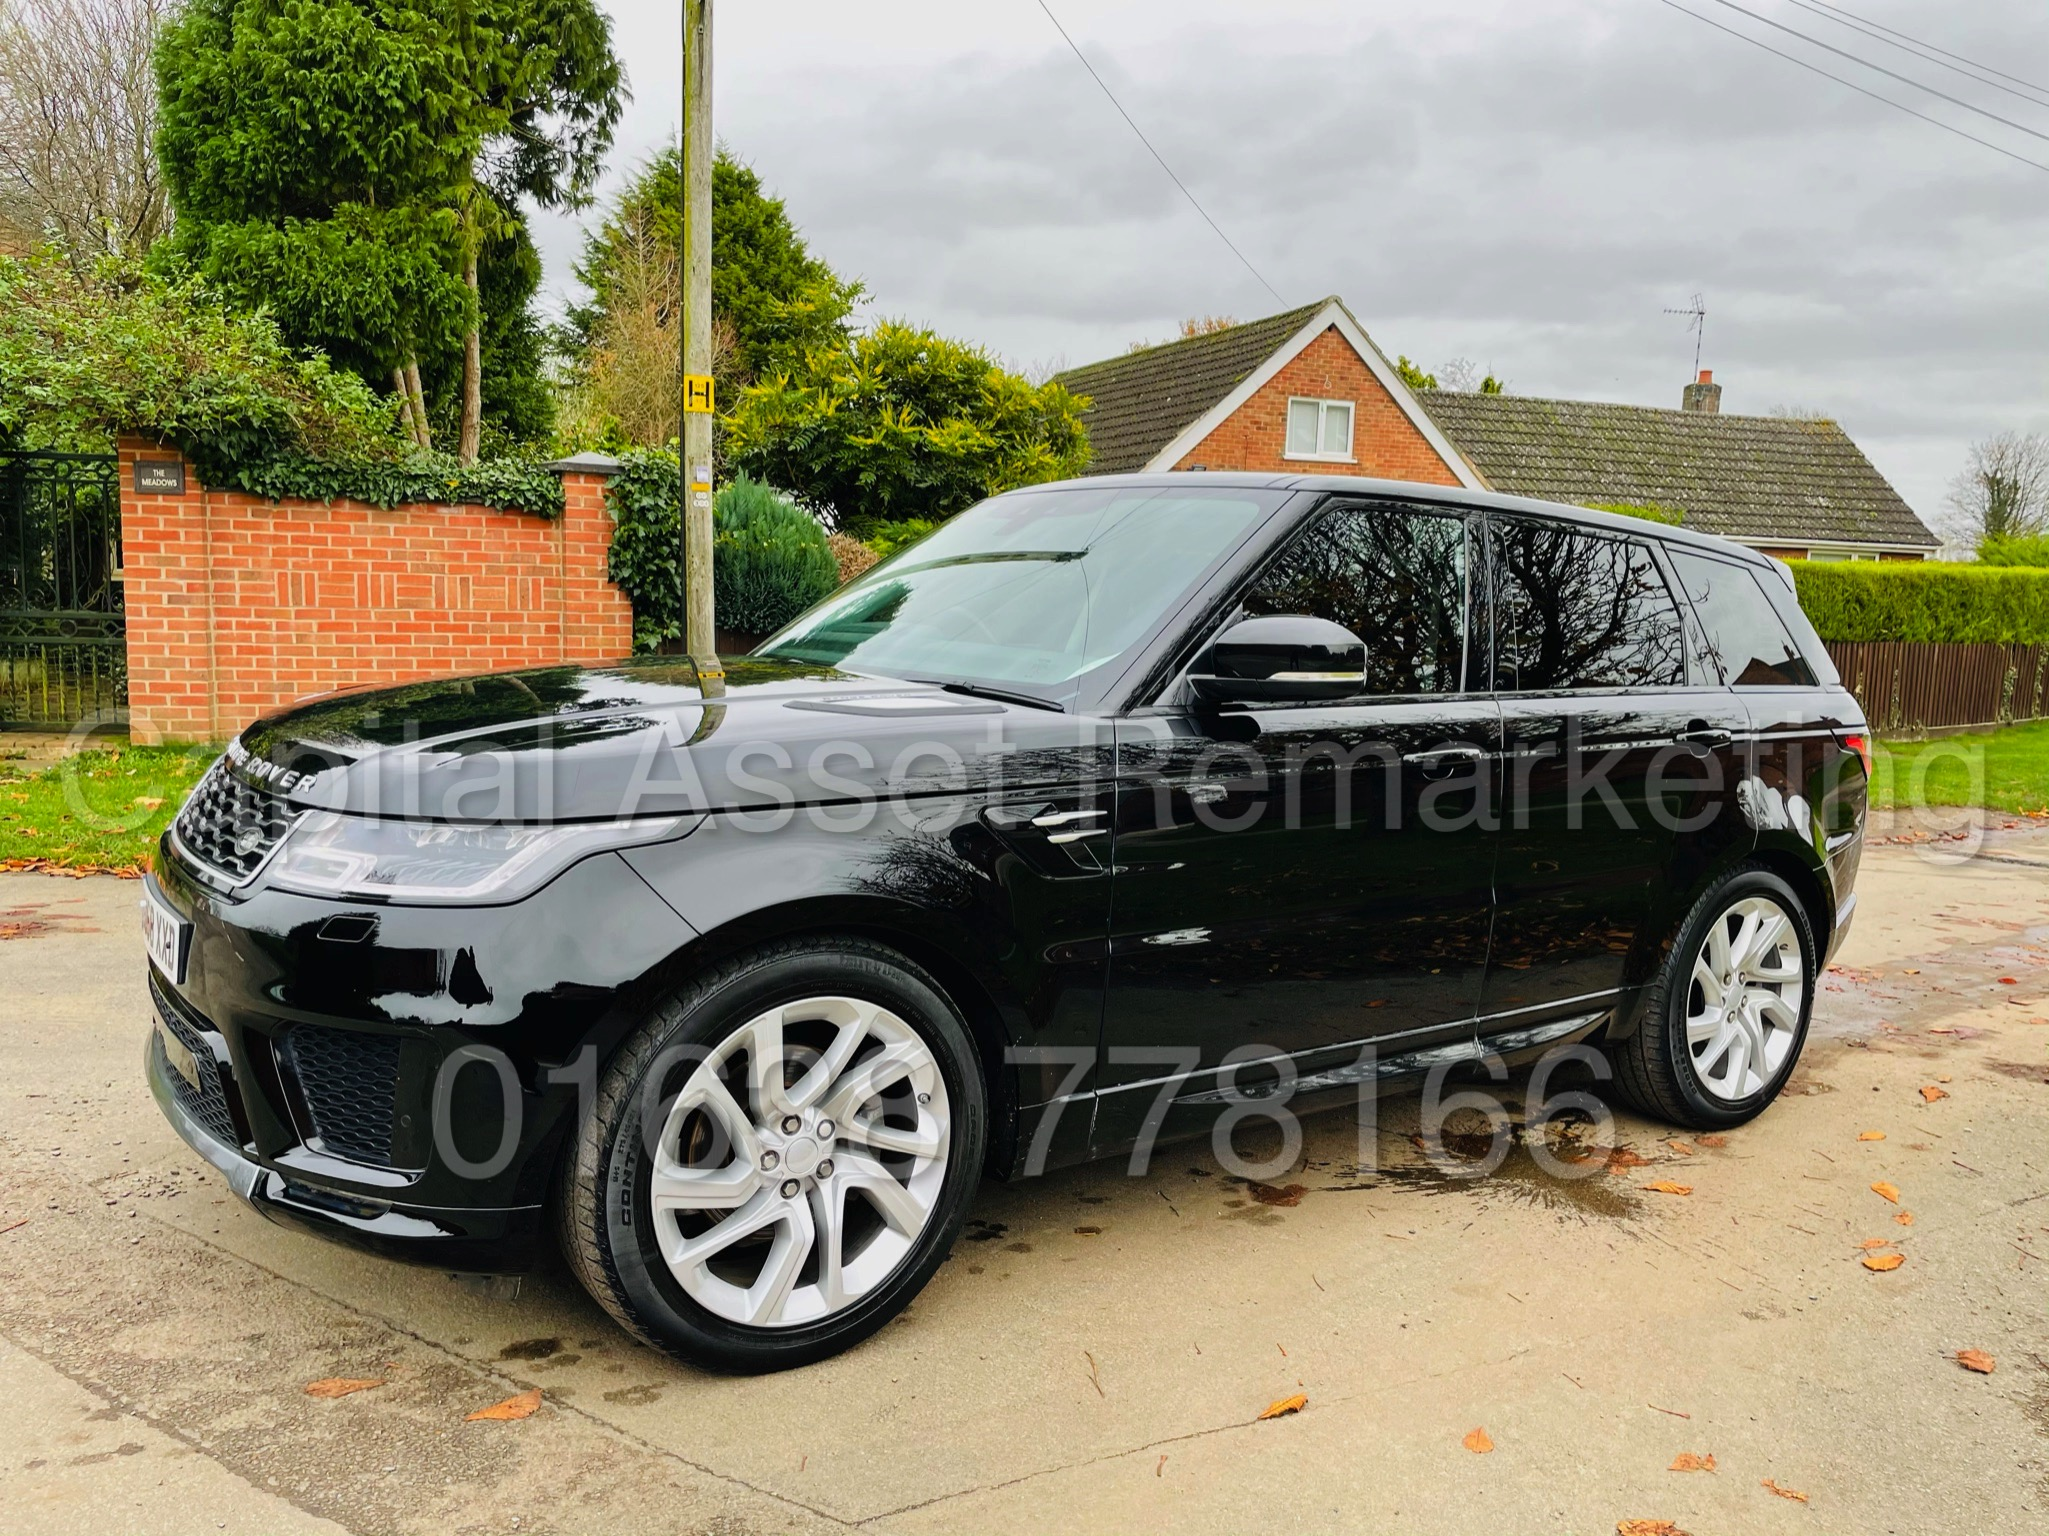 RANGE ROVER SPORT *HSE EDITION* SUV (2019 MODEL) '3.0 SDV6 - 306 BHP - 8 SPEED AUTO' *FULLY LOADED* - Image 7 of 56